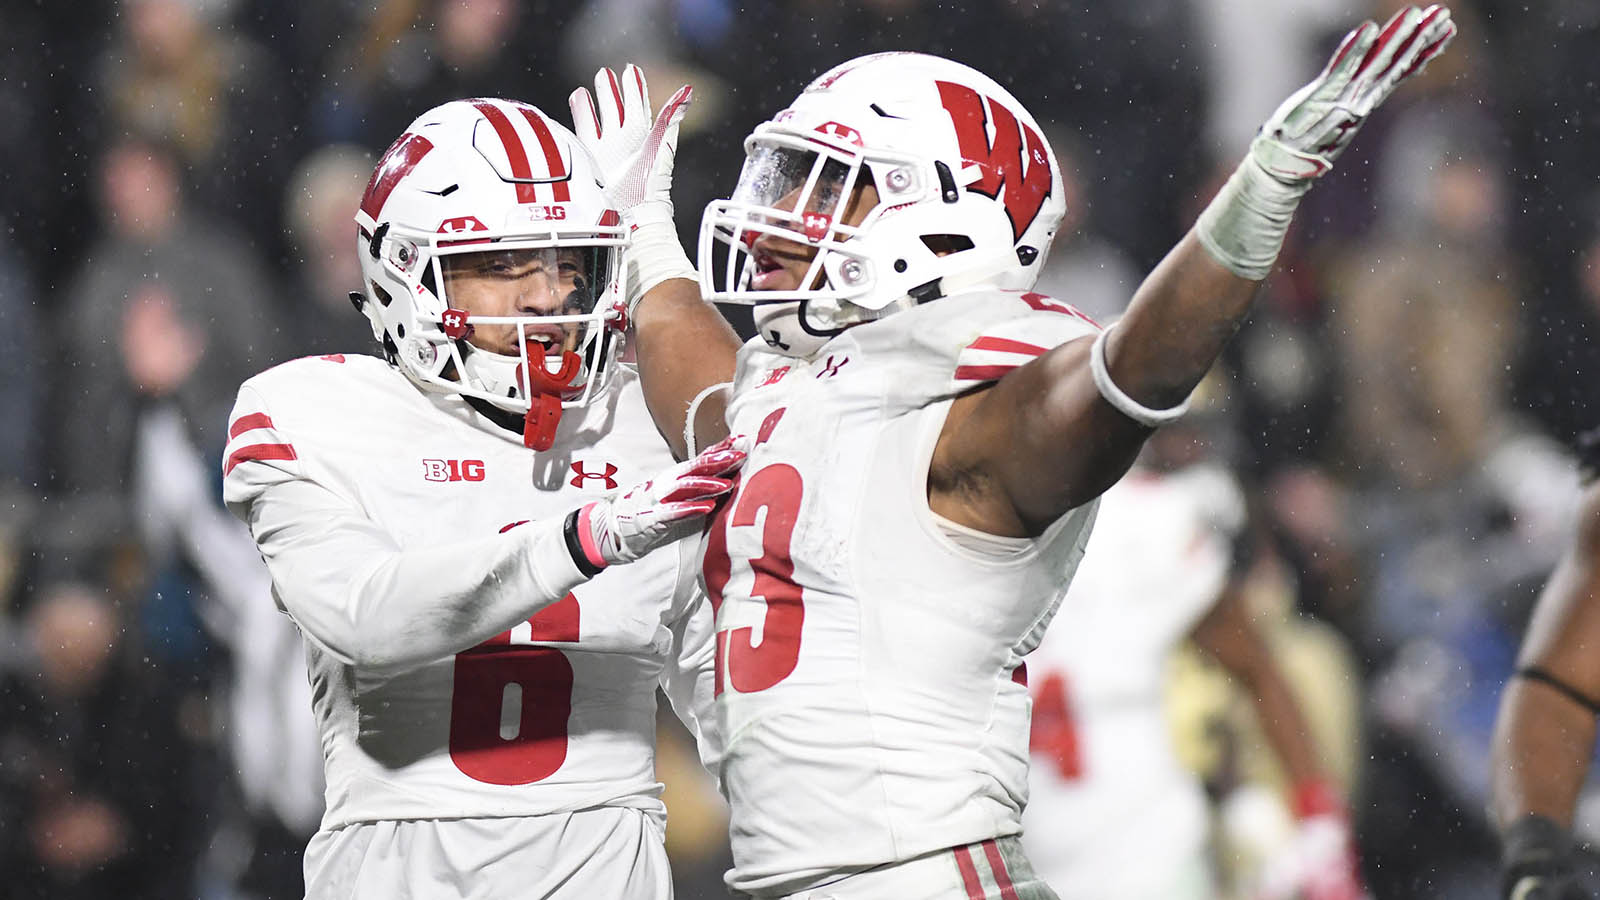 Nov 17, 2018; West Lafayette, IN, USA;  Wisconsin Badgers receiver Danny Davis (6) and running back Jonathon Taylor (23) celebrate after defeating the Purdue Boilermakers, 47-44, in triple overtime at Ross-Ade Stadium. Mandatory Credit: Thomas J. Russo-USA TODAY Sports